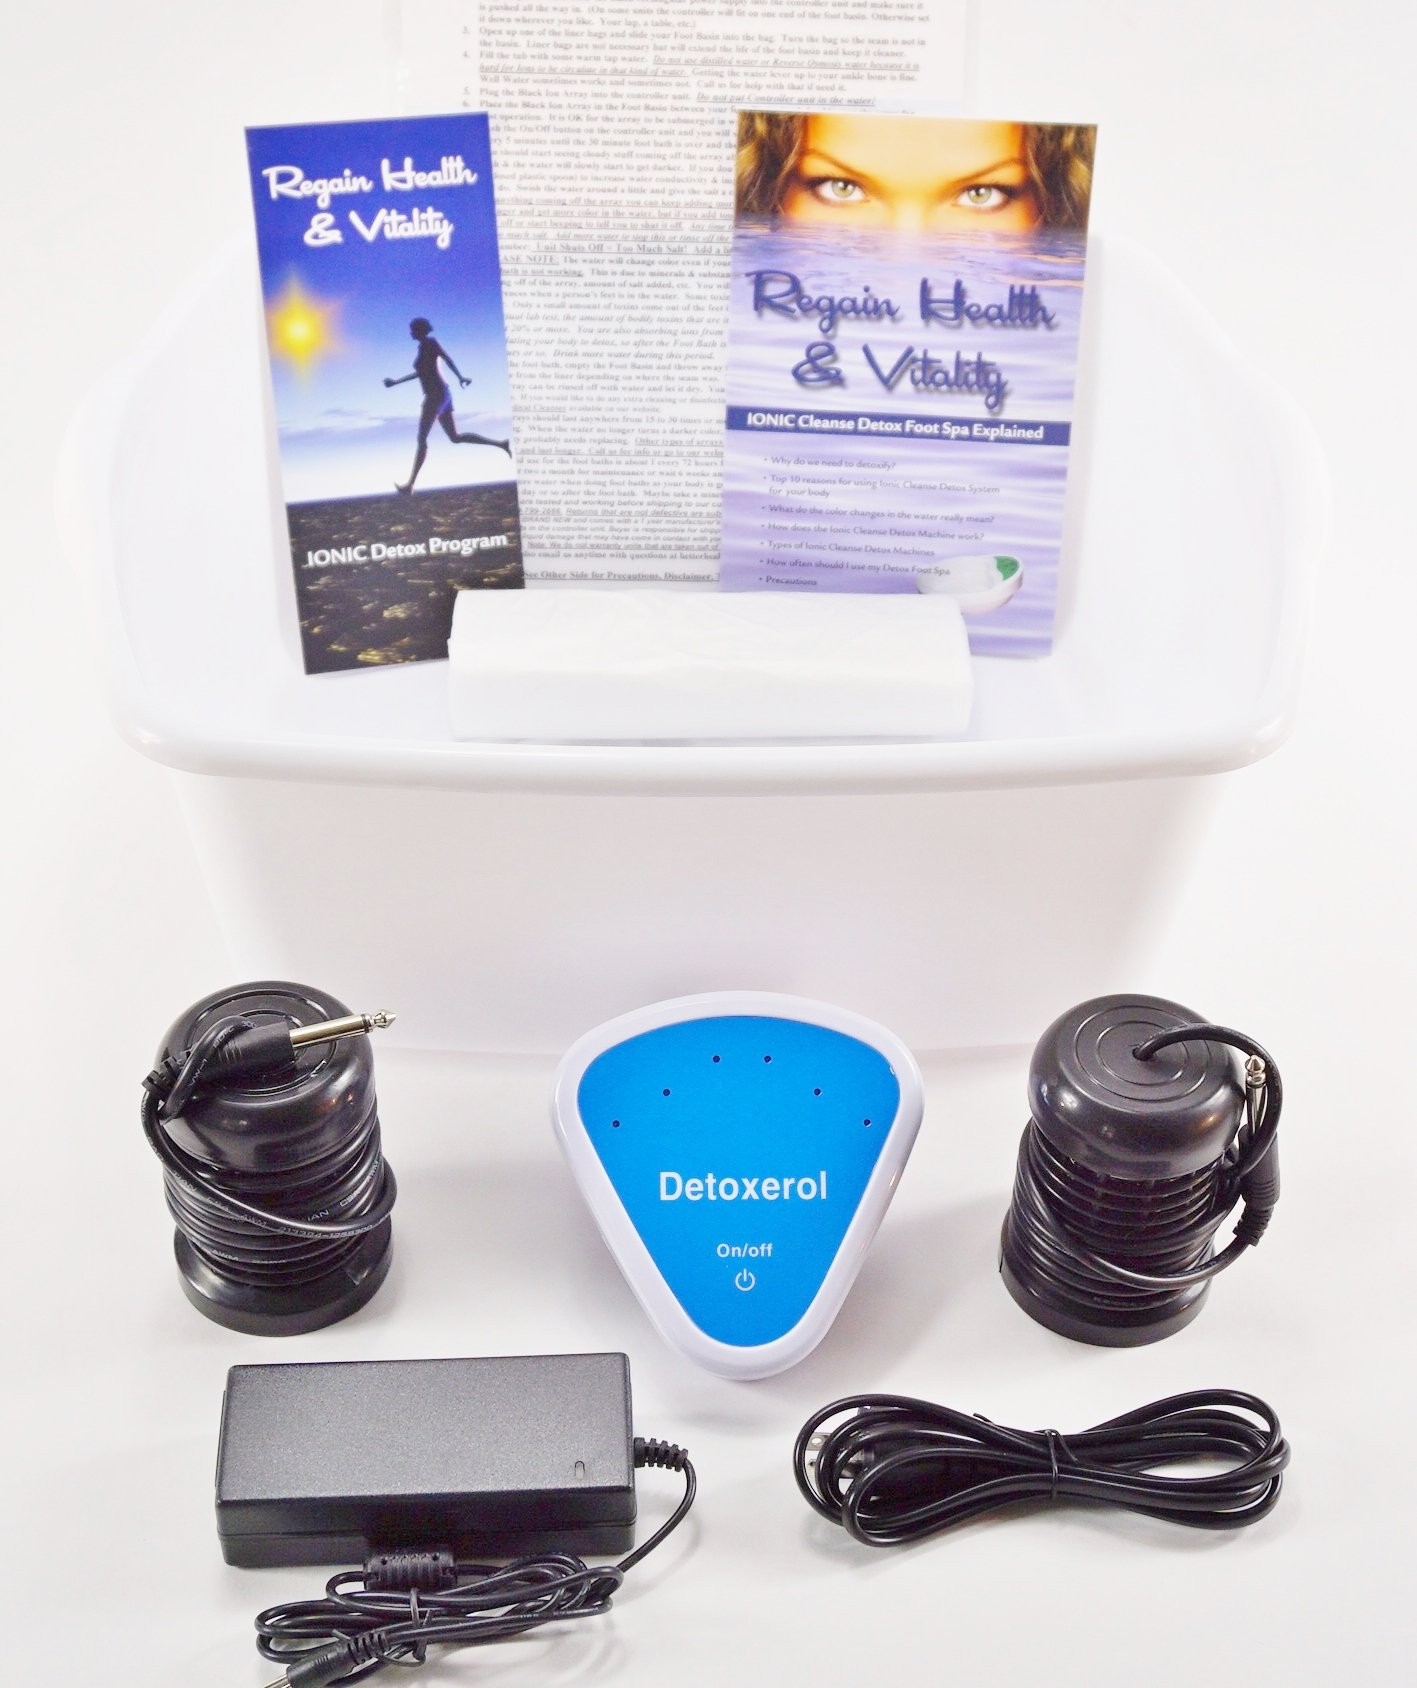 FOOT SPA DETOX MACHINE - With Foot Basin - FREE Regain Health and Vitality Brochure and 16 page Booklet. - From Better Health Company by BHC (Image #1)